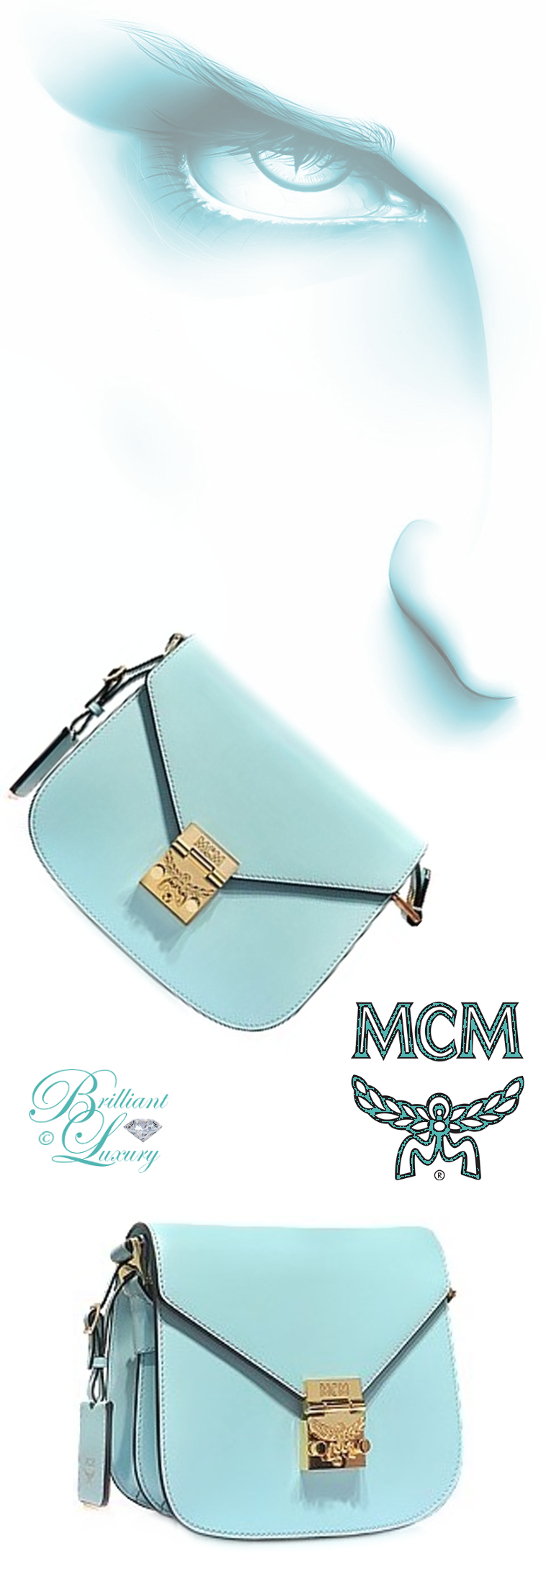 Brilliant Luxury ♦ MCM Patricia Shoulder Bag